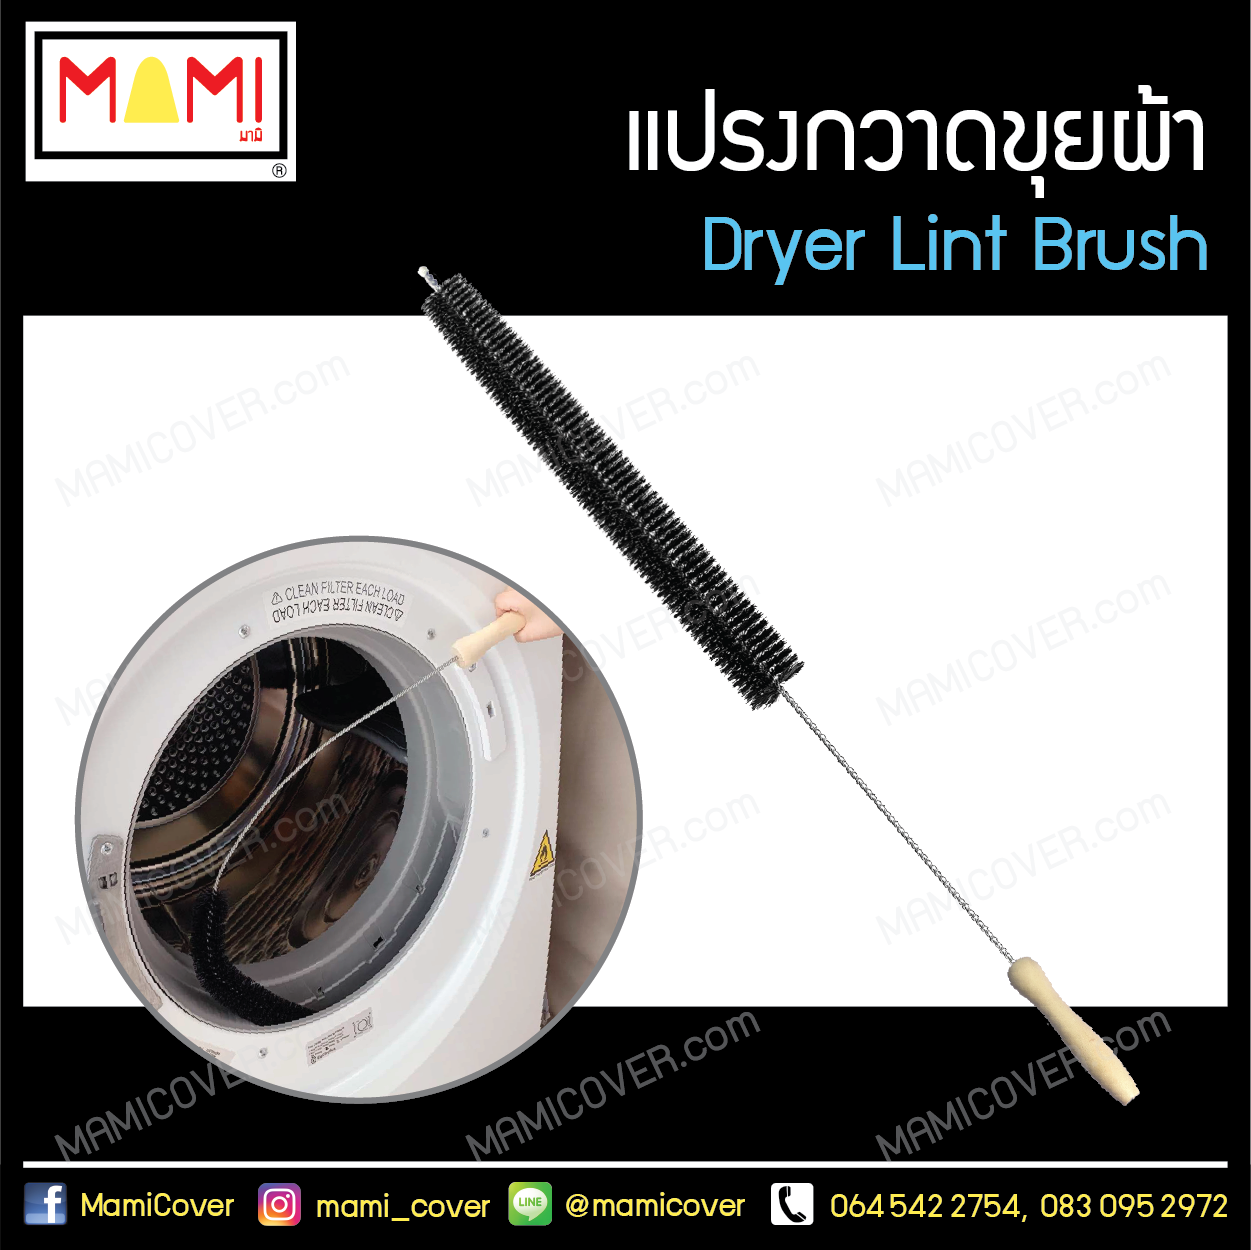 Dryer Lint Brush Category Cover